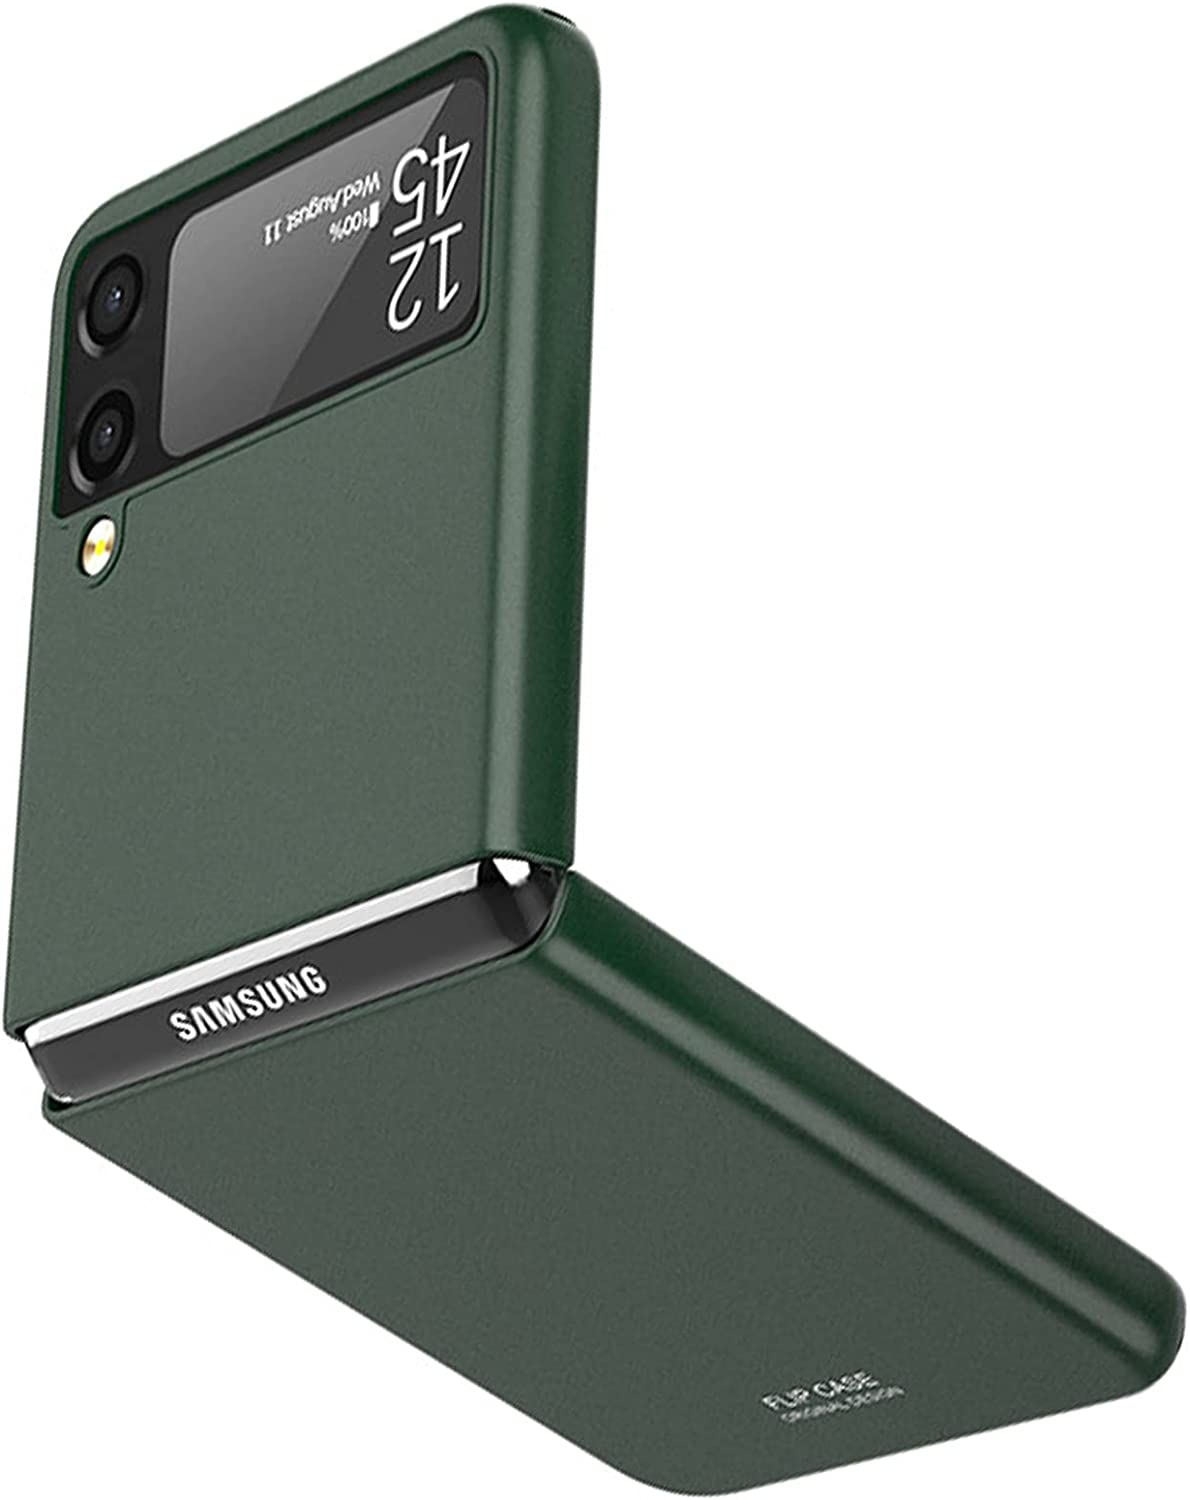 NINKI Ultra Slim Galaxy Z Flip 3 Case 5g 2021,Shockproof Solid PC Cover Thin Protective Case for Samsung Galaxy Z Flip 3 Case 5g,Compatible Samsung Galaxy Z Flip 3 5G Accessories Phone Case -Green